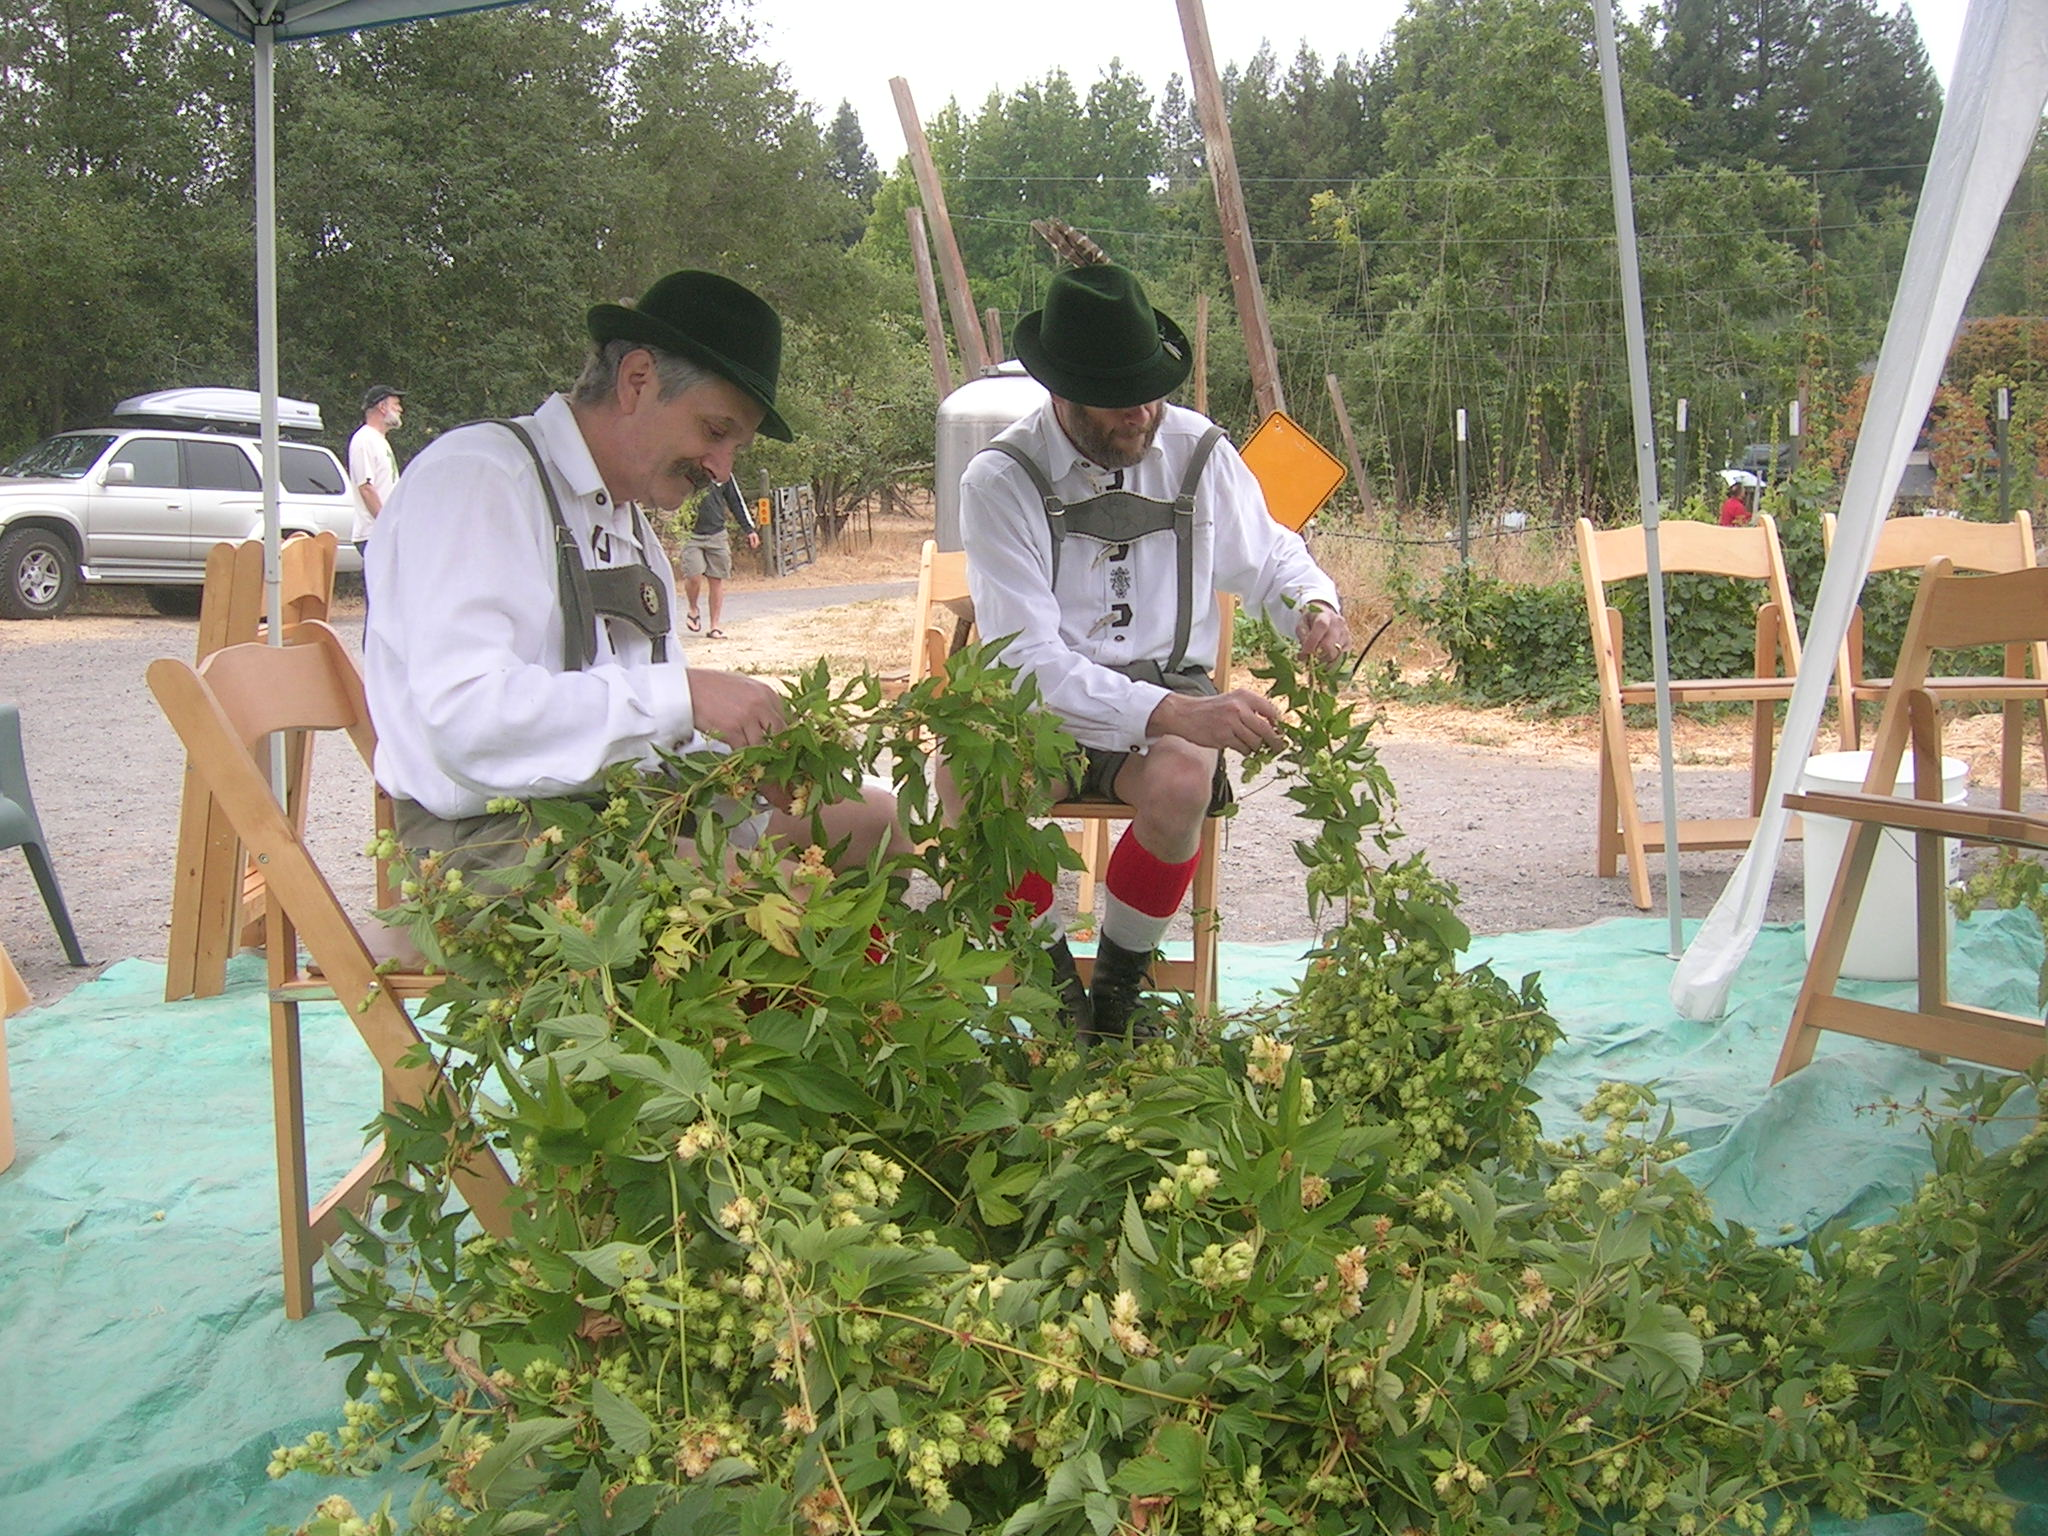 These curious migrant hop pickers got to work